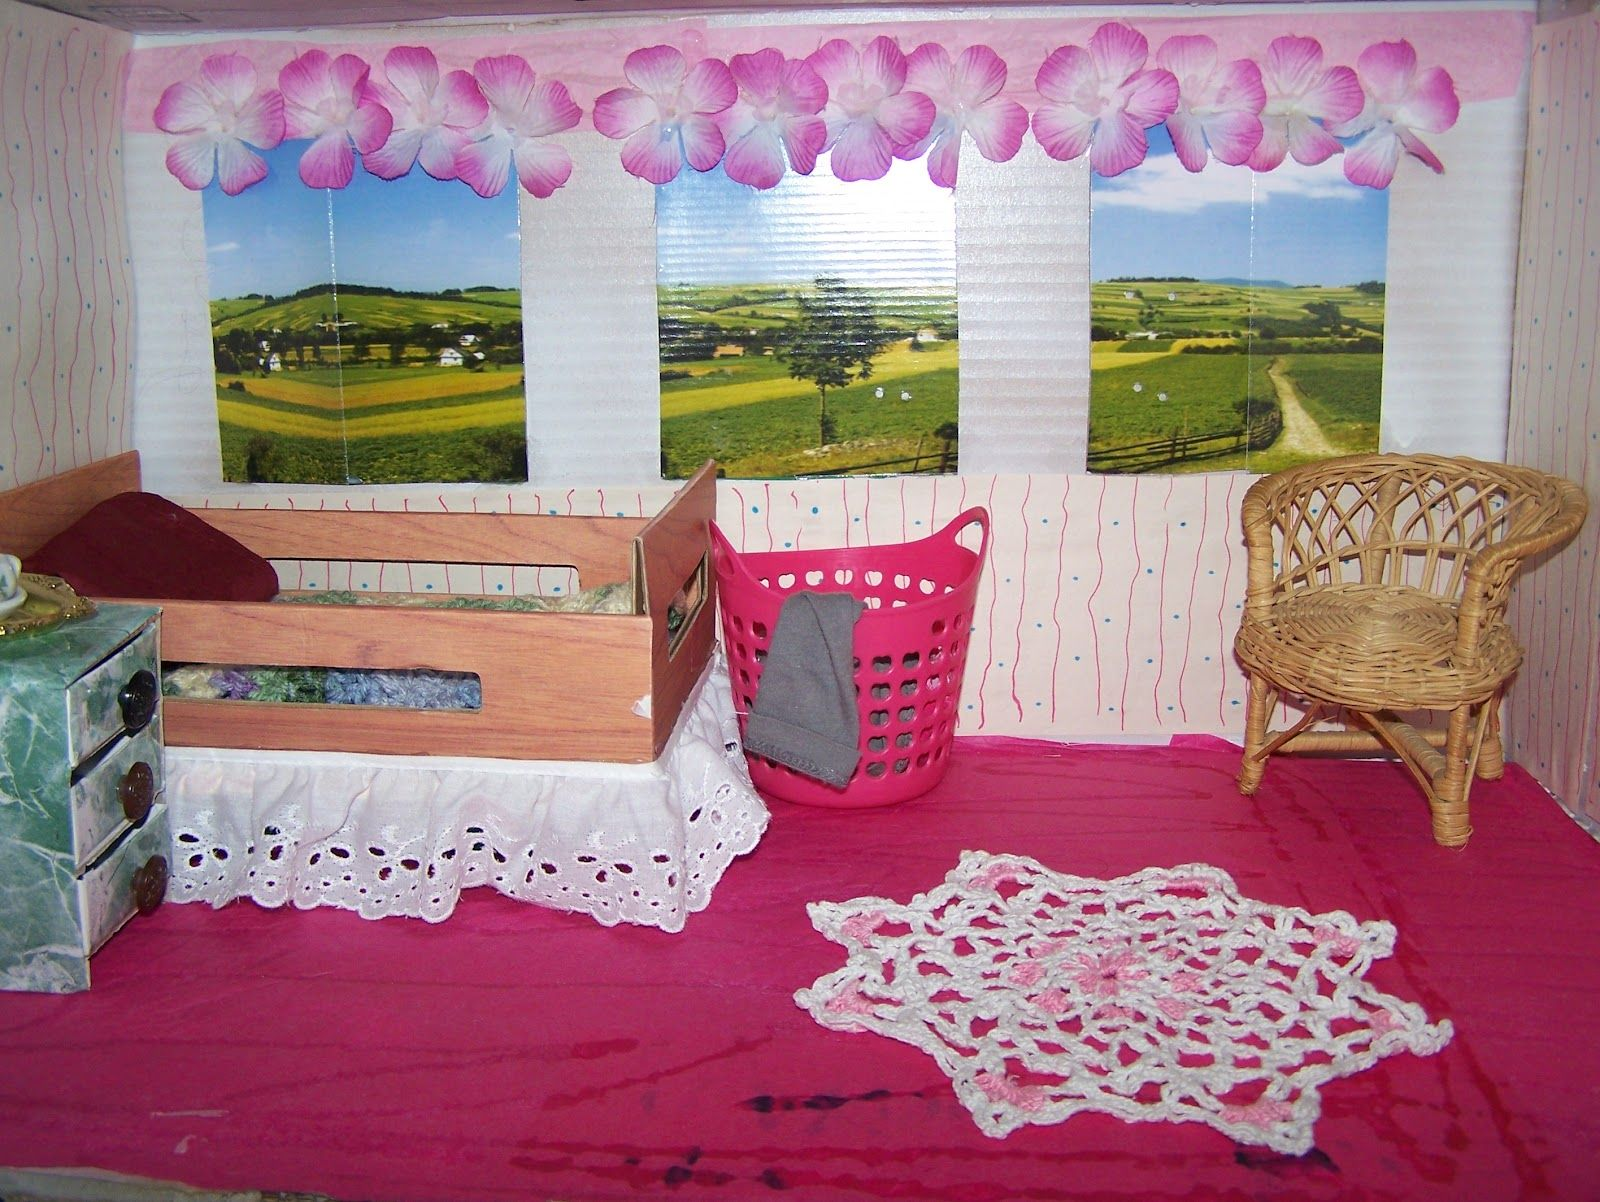 Barbie Printable Dollhouse Stuff | Dollhouse Nursery, 1/6 Scale, or How Barbie Left the Rental Life and ...